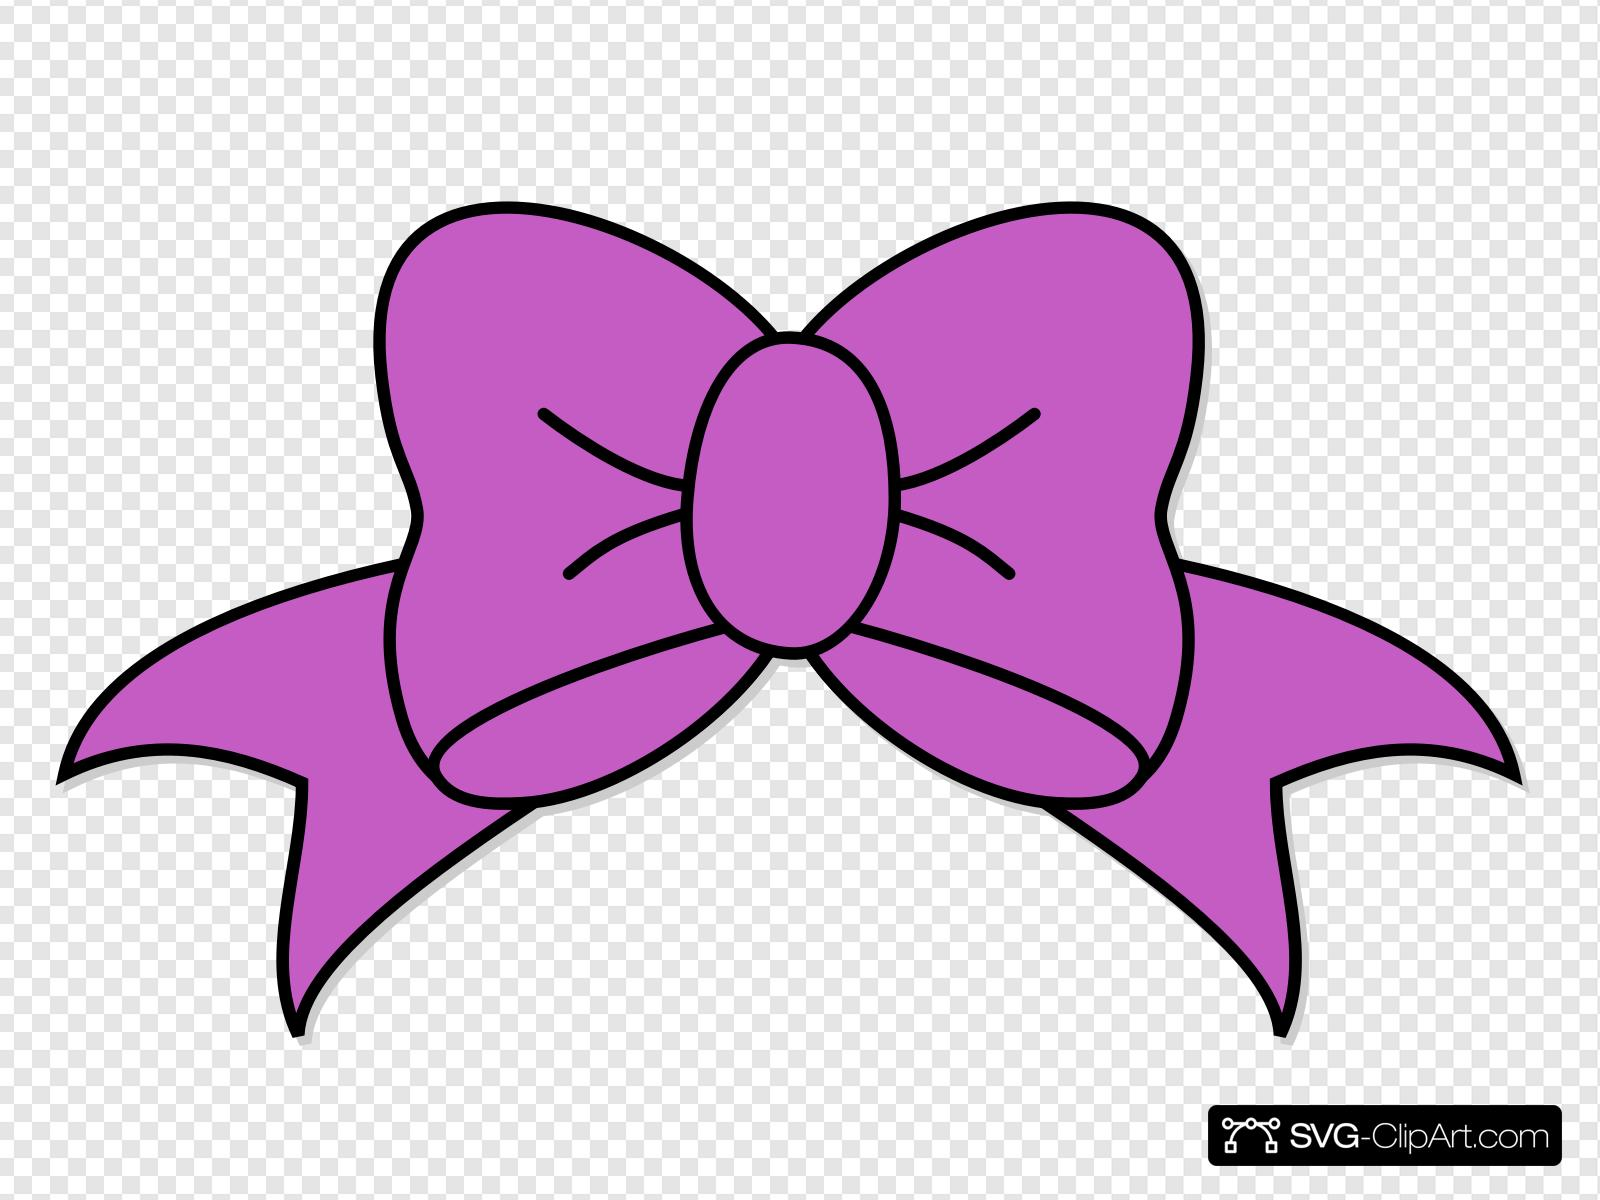 Purple Hair Bow Clip art, Icon and SVG.